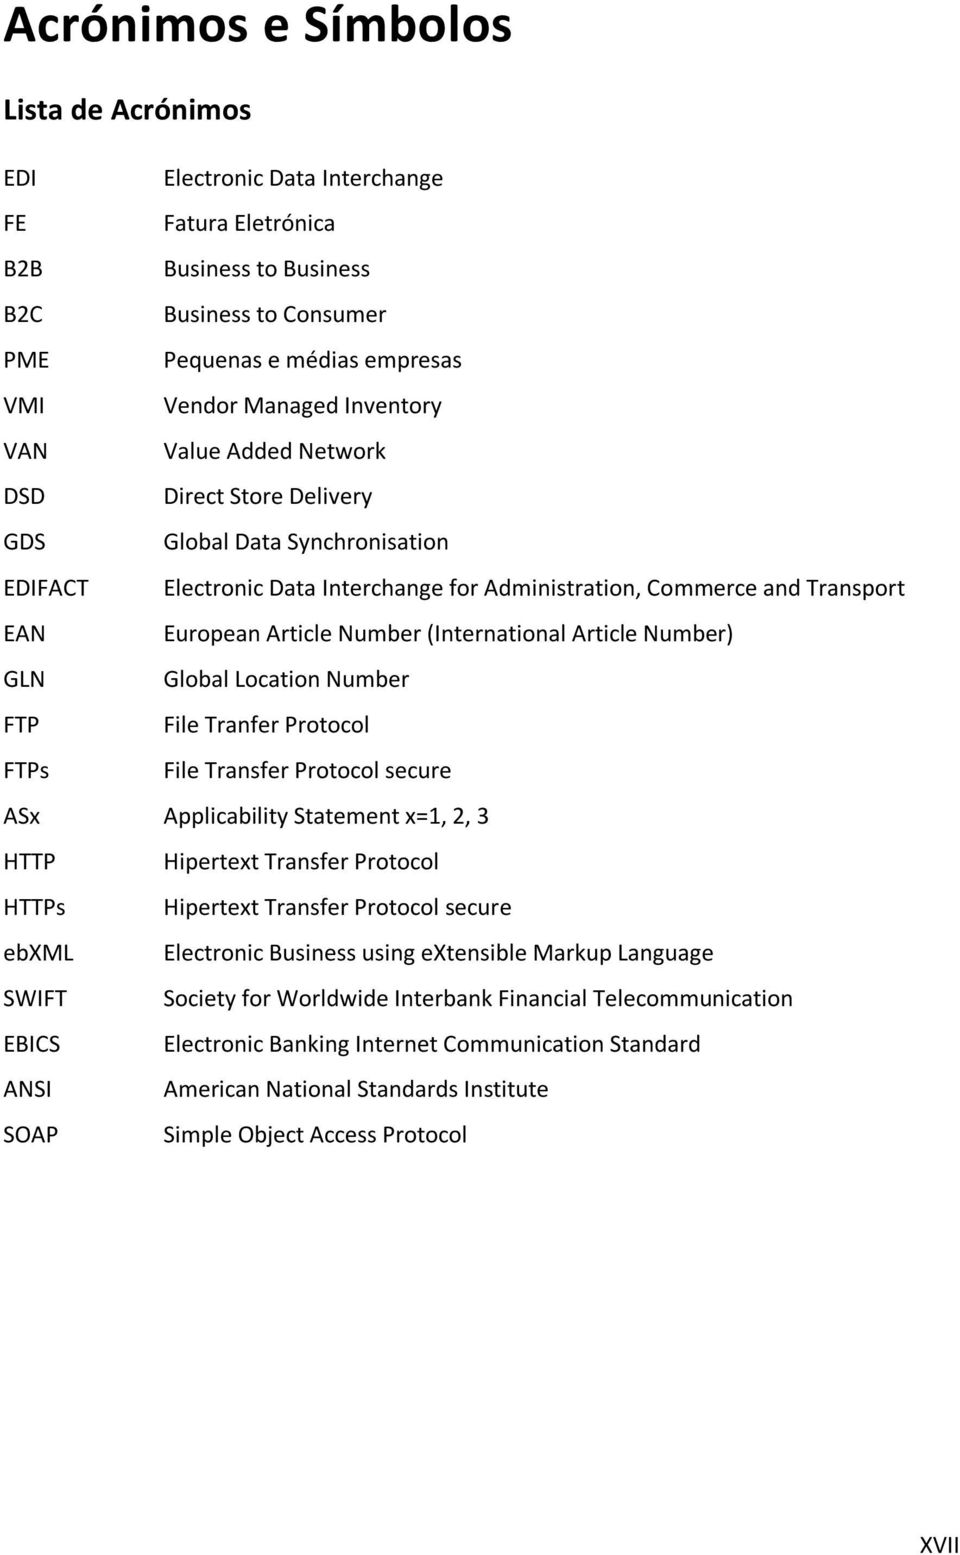 (International Article Number) GLN Global Location Number FTP File Tranfer Protocol FTPs File Transfer Protocol secure ASx Applicability Statement x=1, 2, 3 HTTP Hipertext Transfer Protocol HTTPs